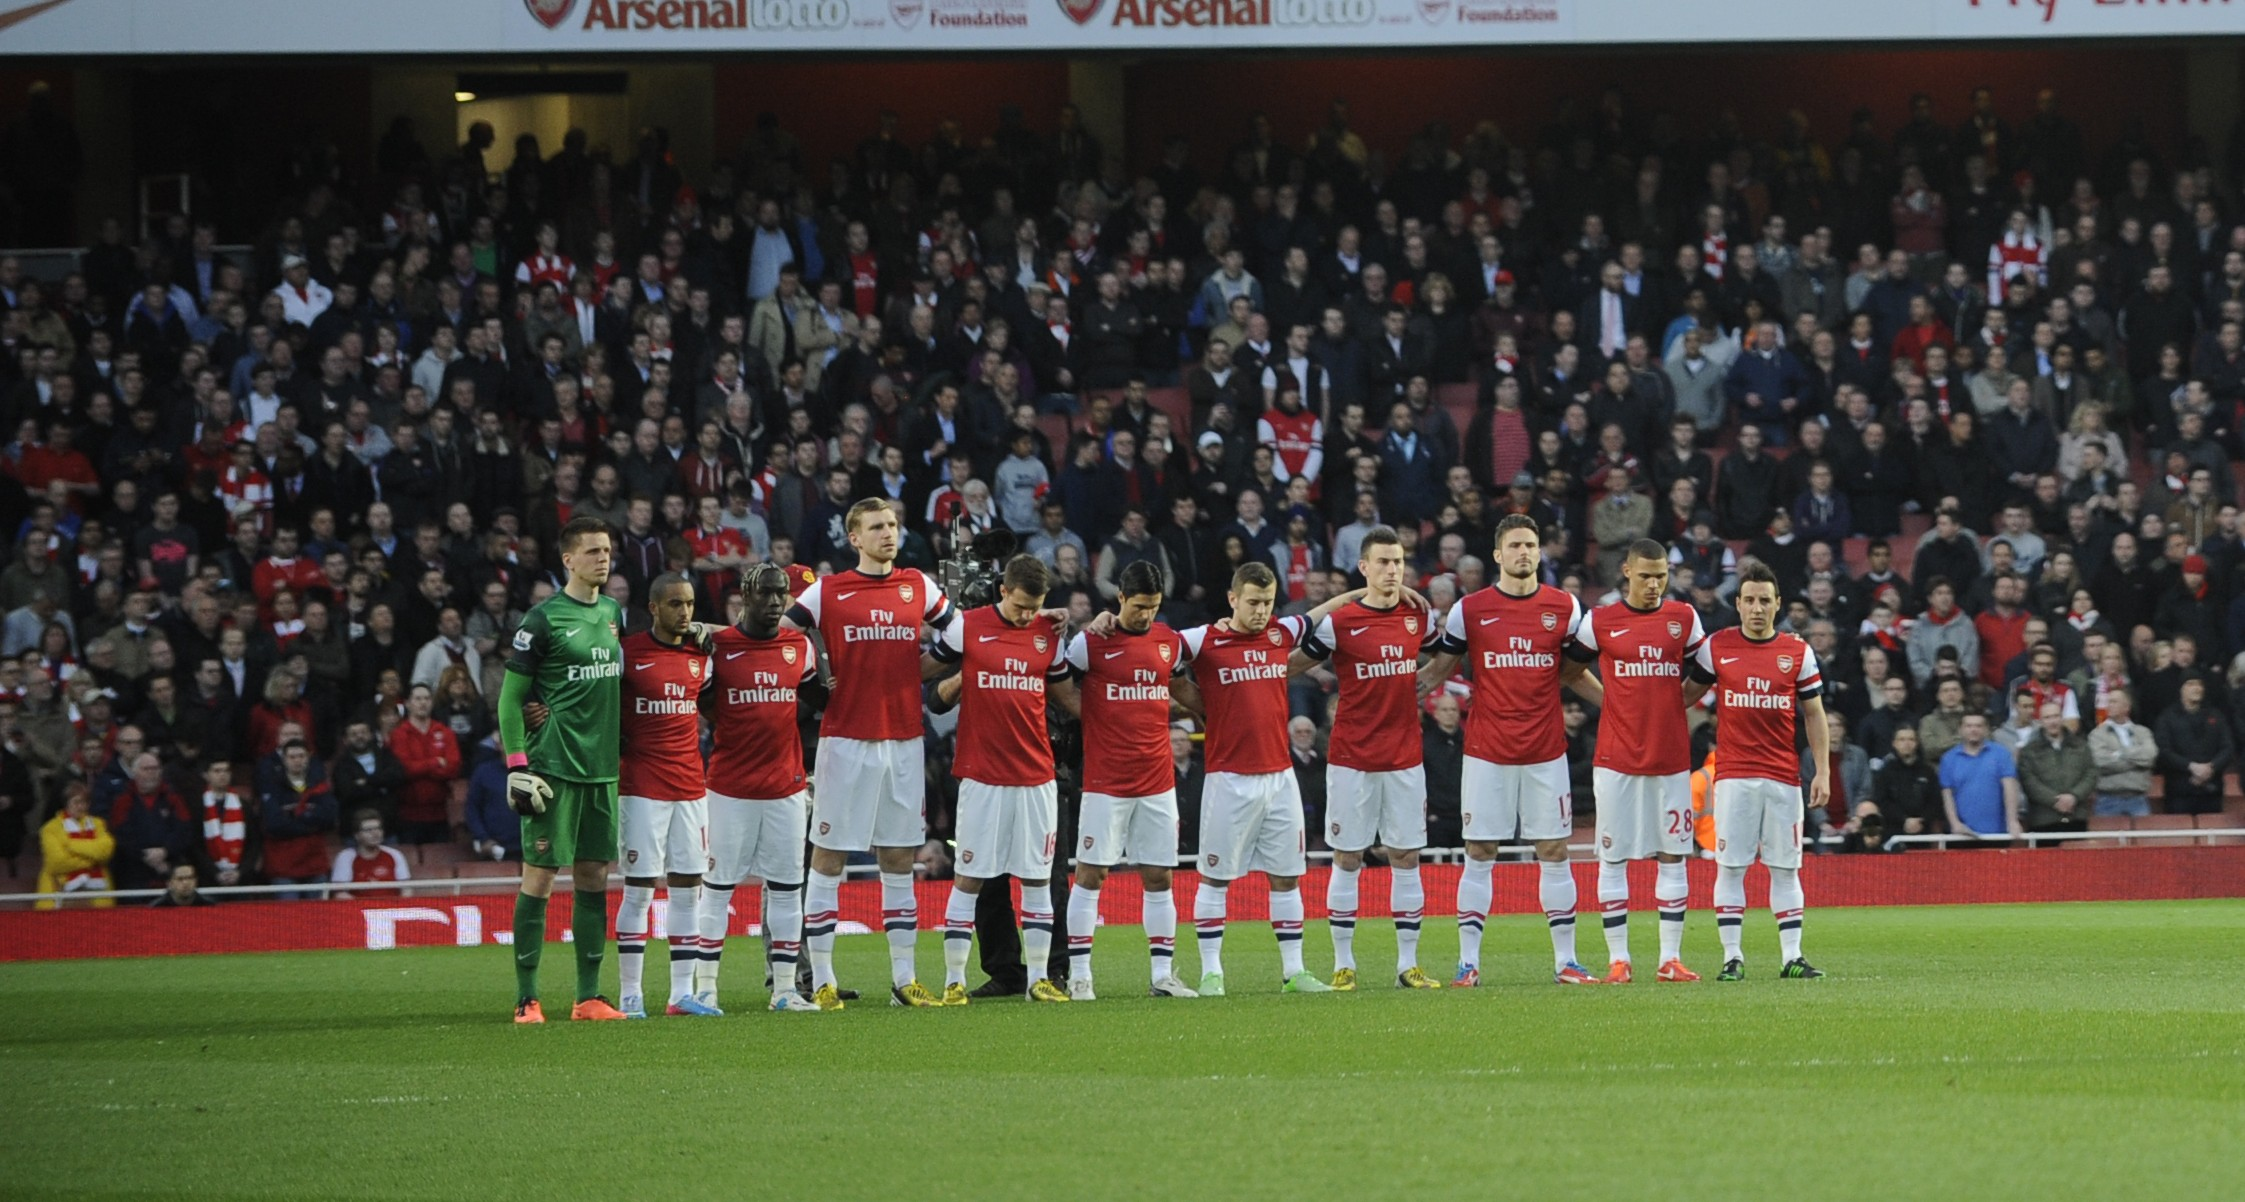 Arsenal fans up in arms as club consider guard of honour for Robin van Persie and Manchester United team-mates